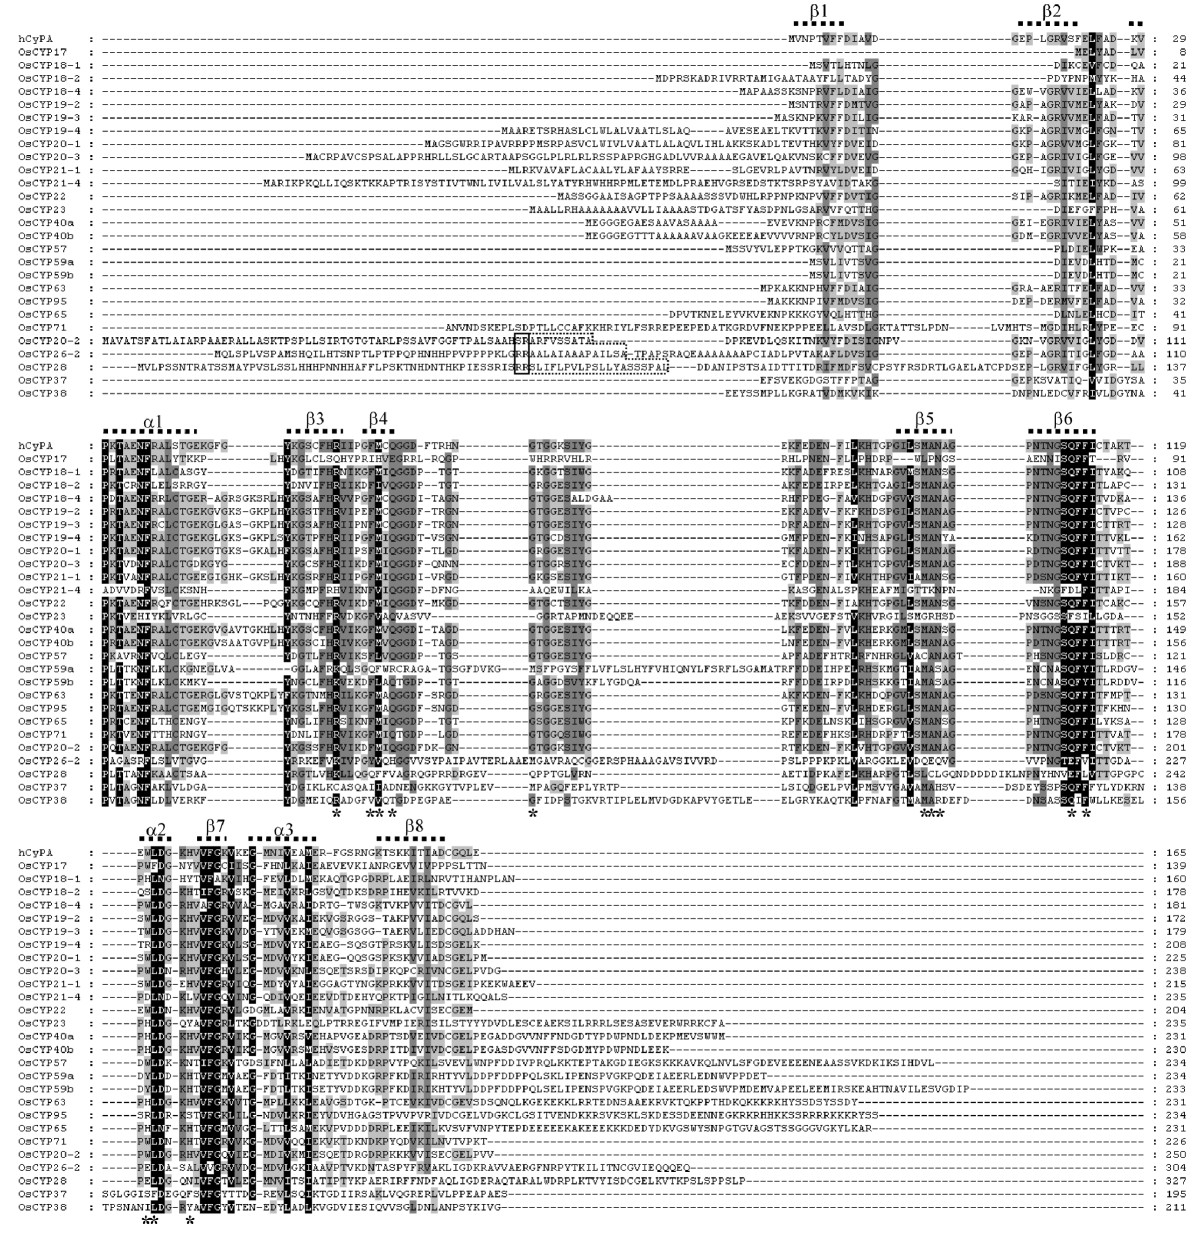 http://static-content.springer.com/image/art%3A10.1186%2F1471-2229-10-253/MediaObjects/12870_2010_Article_747_Fig4_HTML.jpg